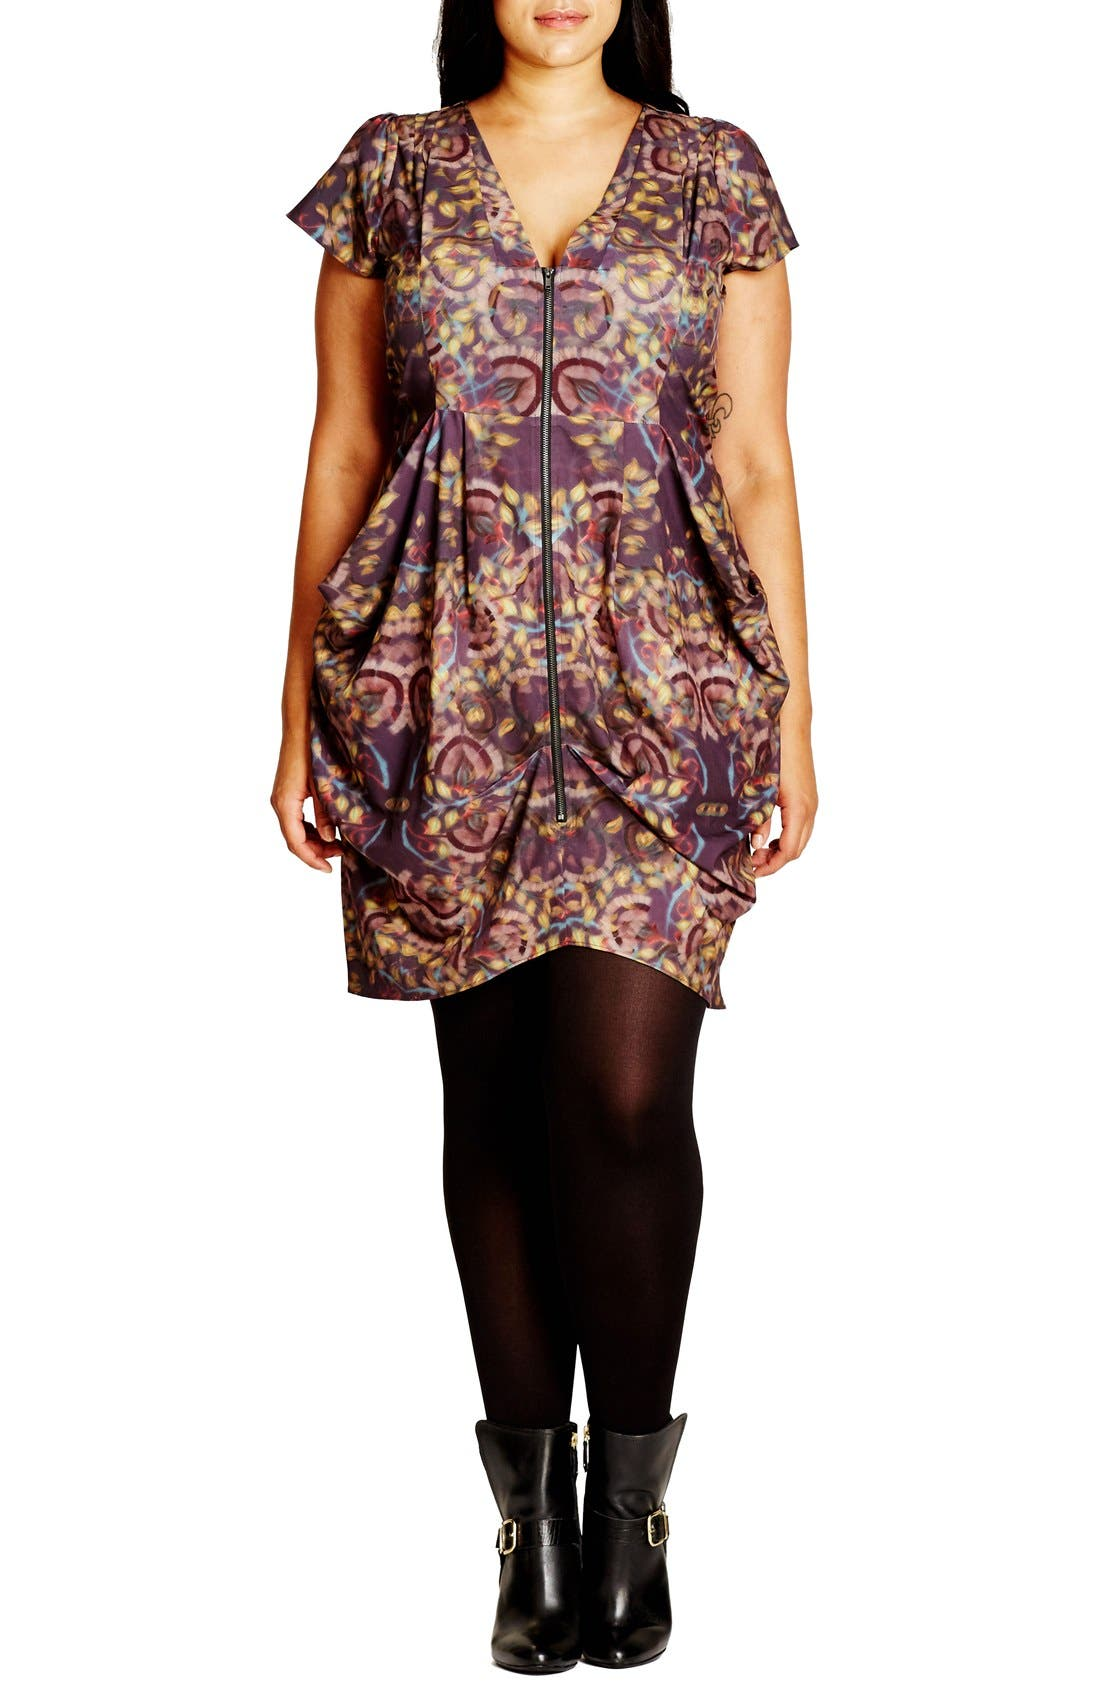 Main Image - City Chic 'Blurred Dream' Print Zip Front Pleat Tunic (Plus Size)